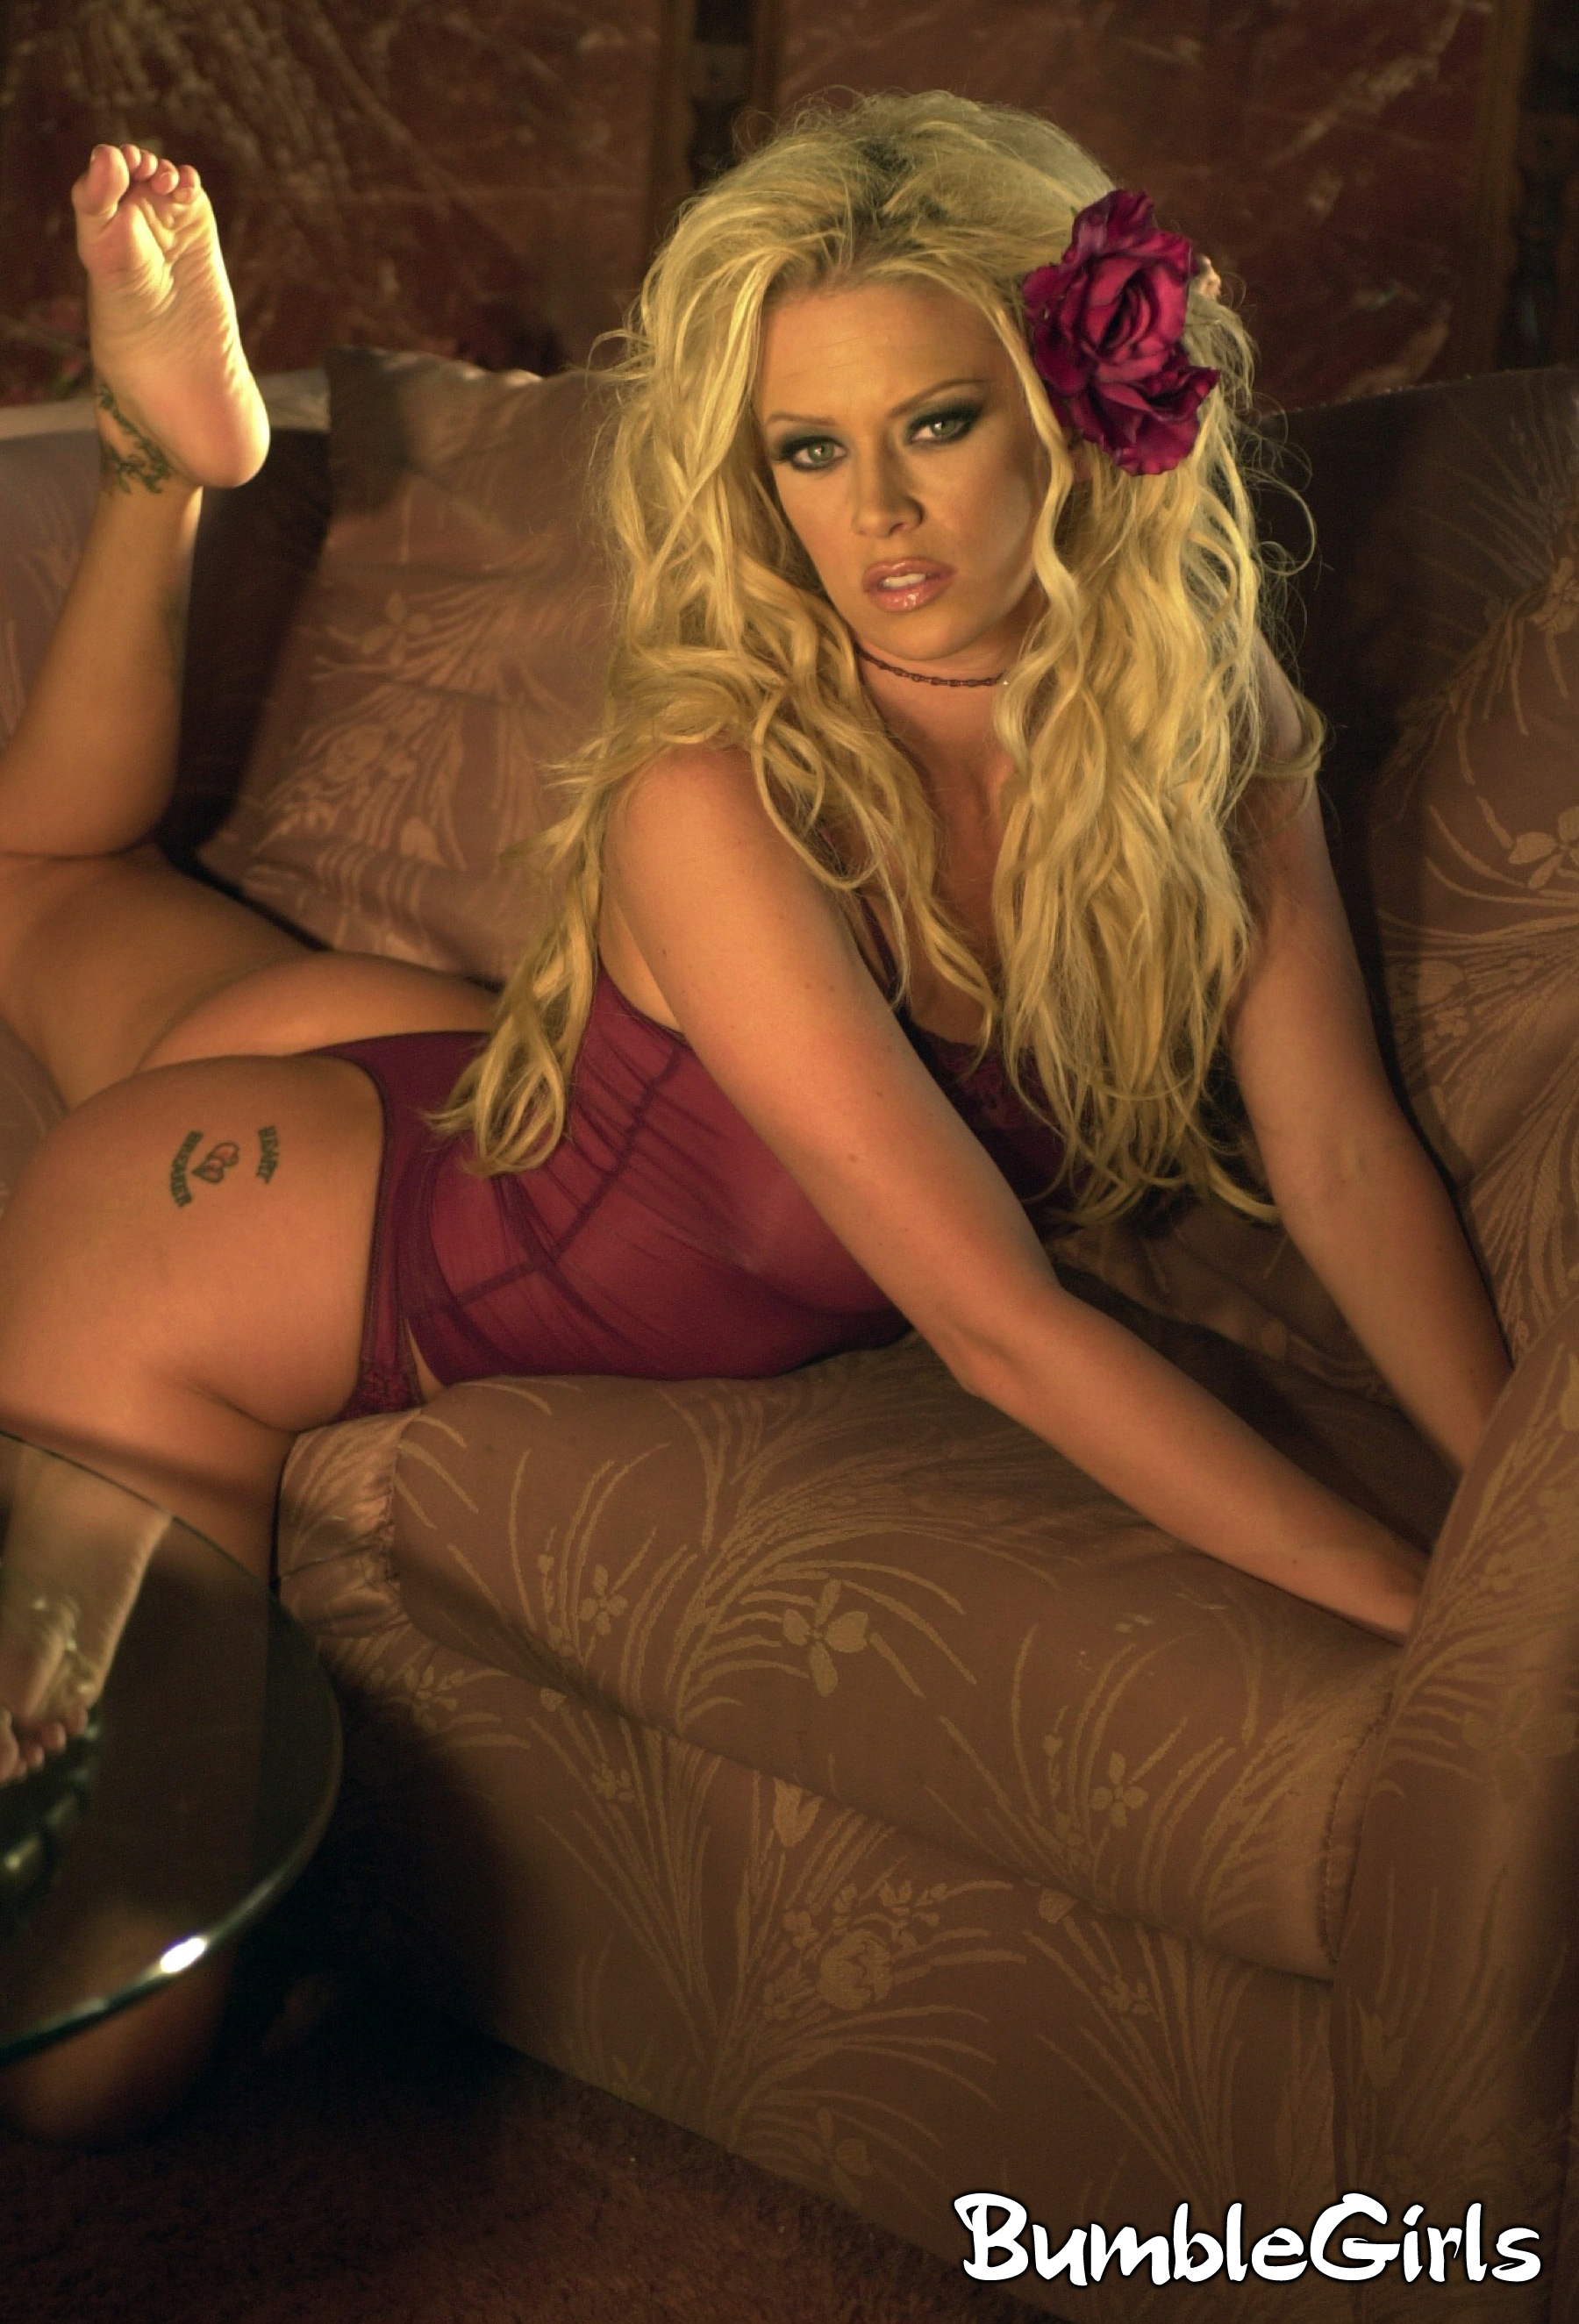 jenna jameson porno body and soul regensburg